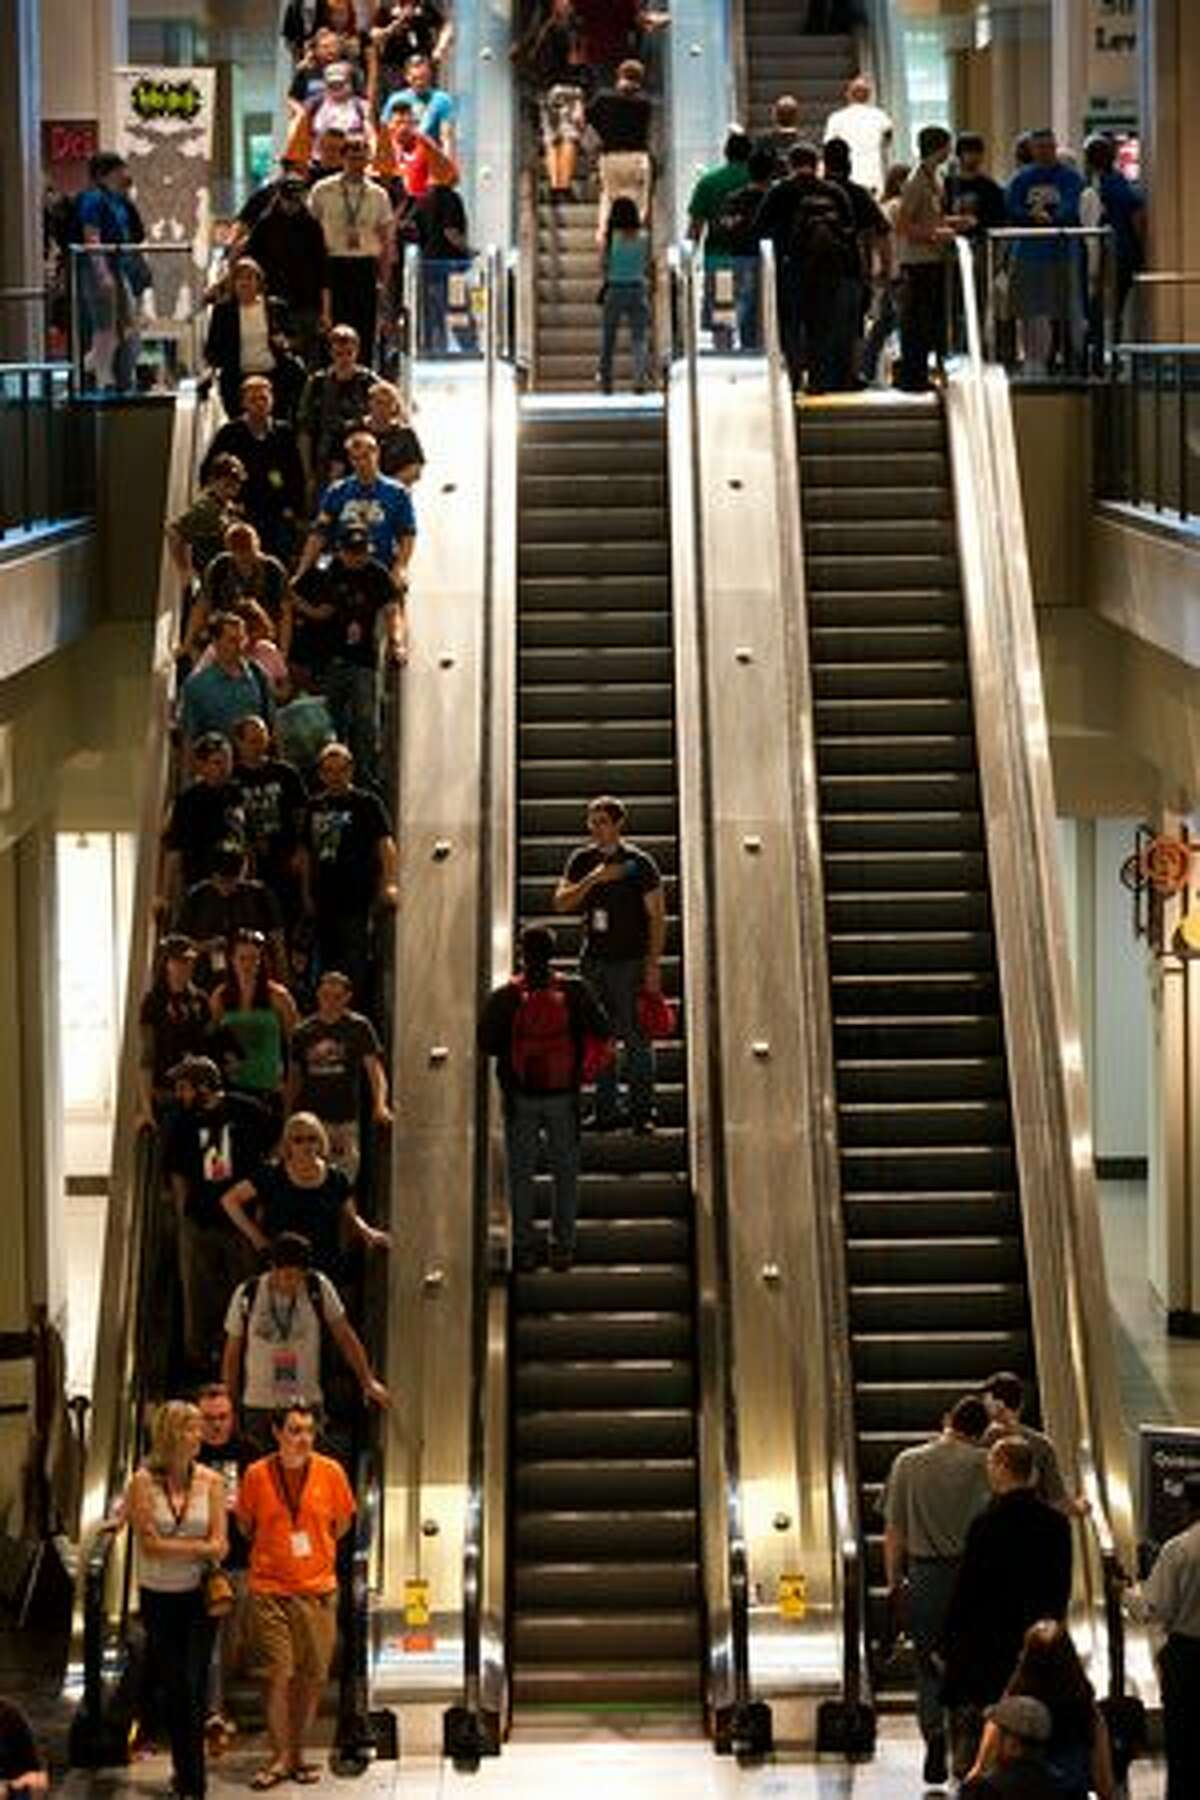 Gamers flood the escalators as they make their way through the event.